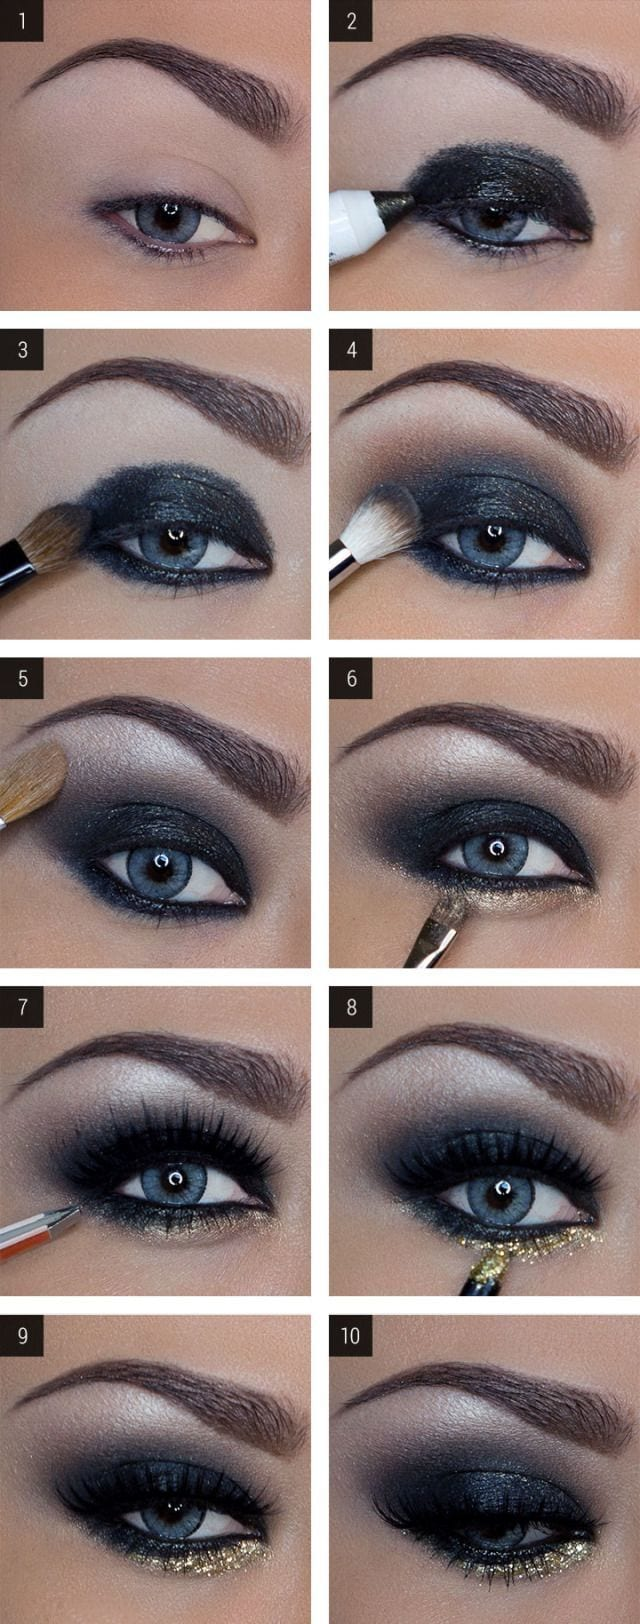 step by step eye makeup tutorial for dark skin girls